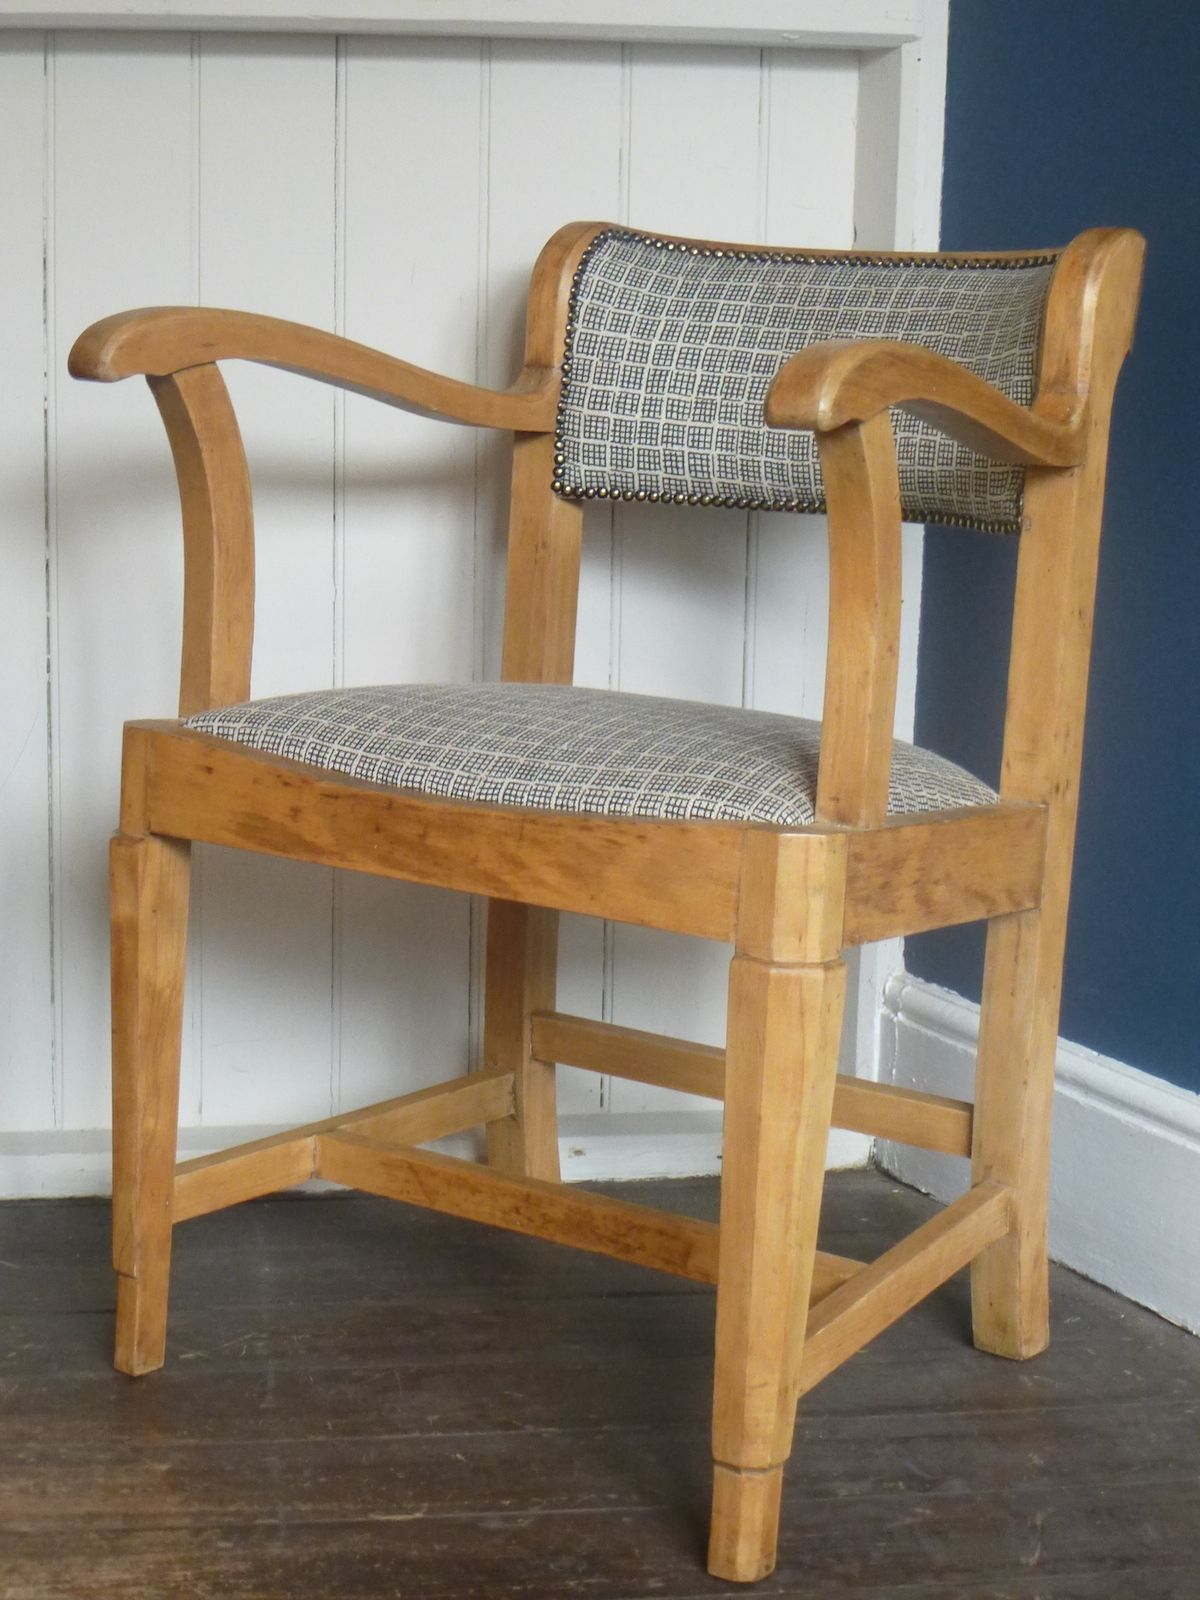 Stylish Desk Chair Square Pattern (With images) Retro